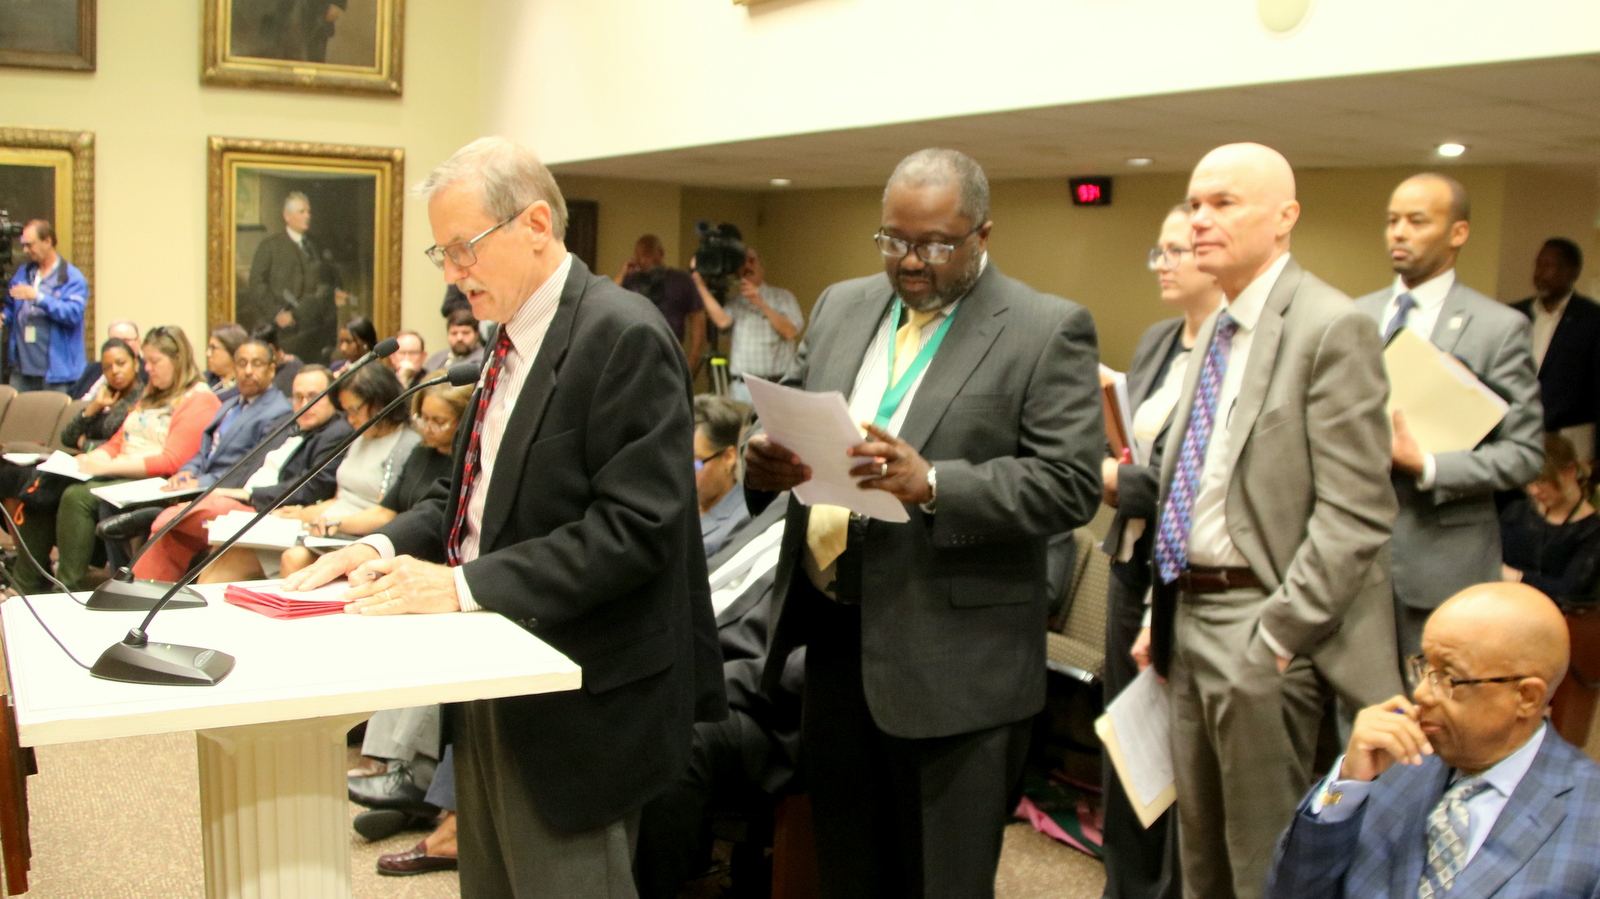 Jack Lattimore, of Friends of Gwynns Falls Leakin Park, testifies before the Board of Estimates. (Fern Shen)